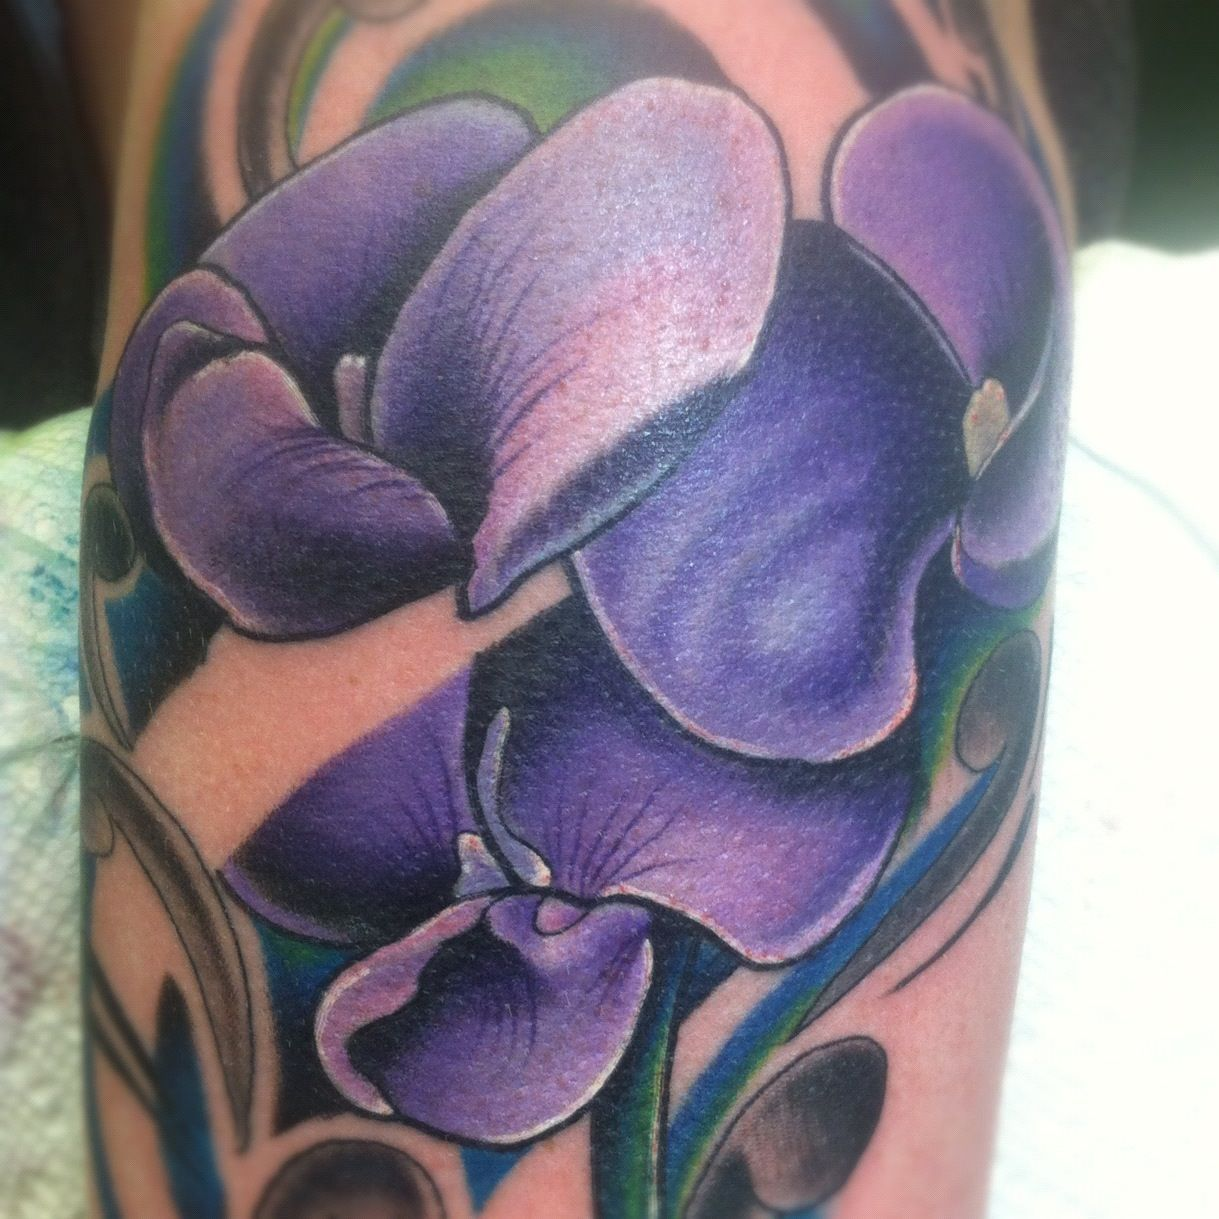 Tattoos of Sweet Pea Plants - Bing Images | Tattoos ...